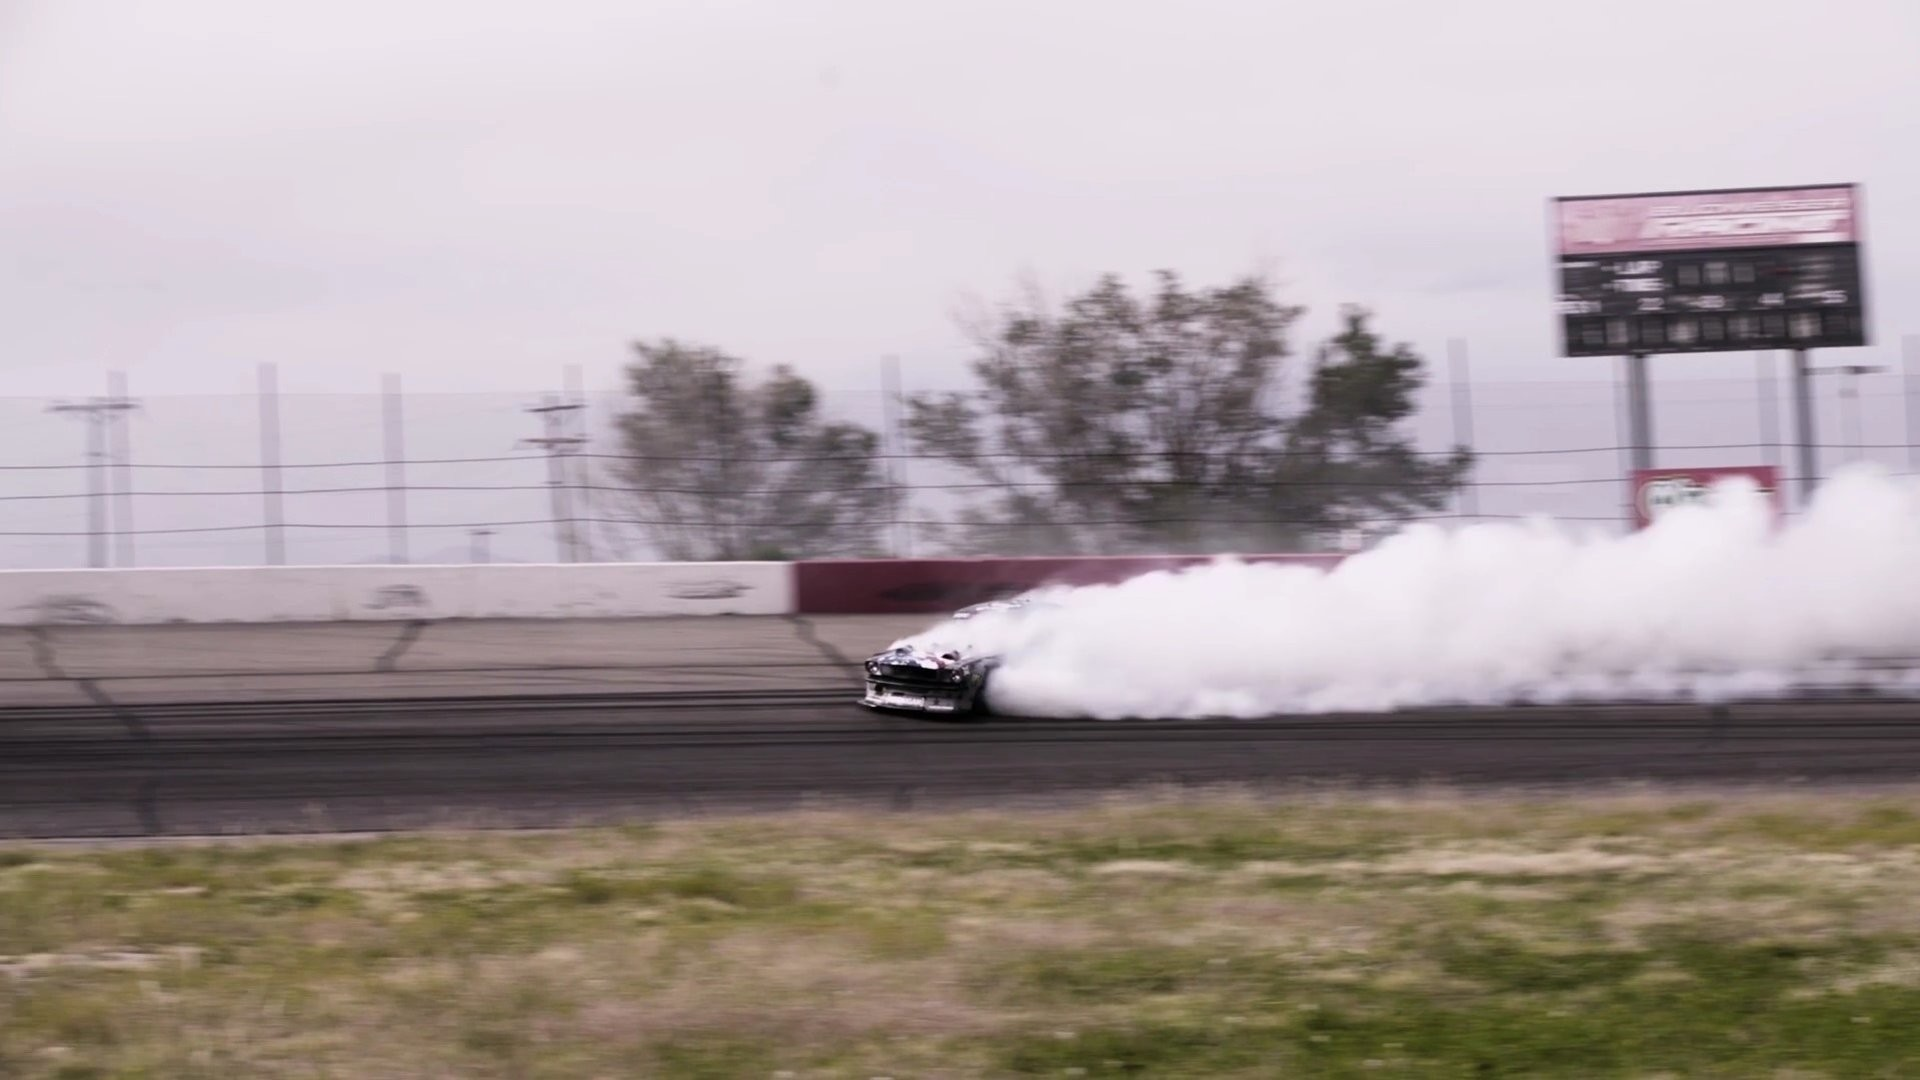 1920x1080 Watch Ken Block Test the 1,400 HP Hoonicorn V2 in Preparation for  Climbkhana - The Drive